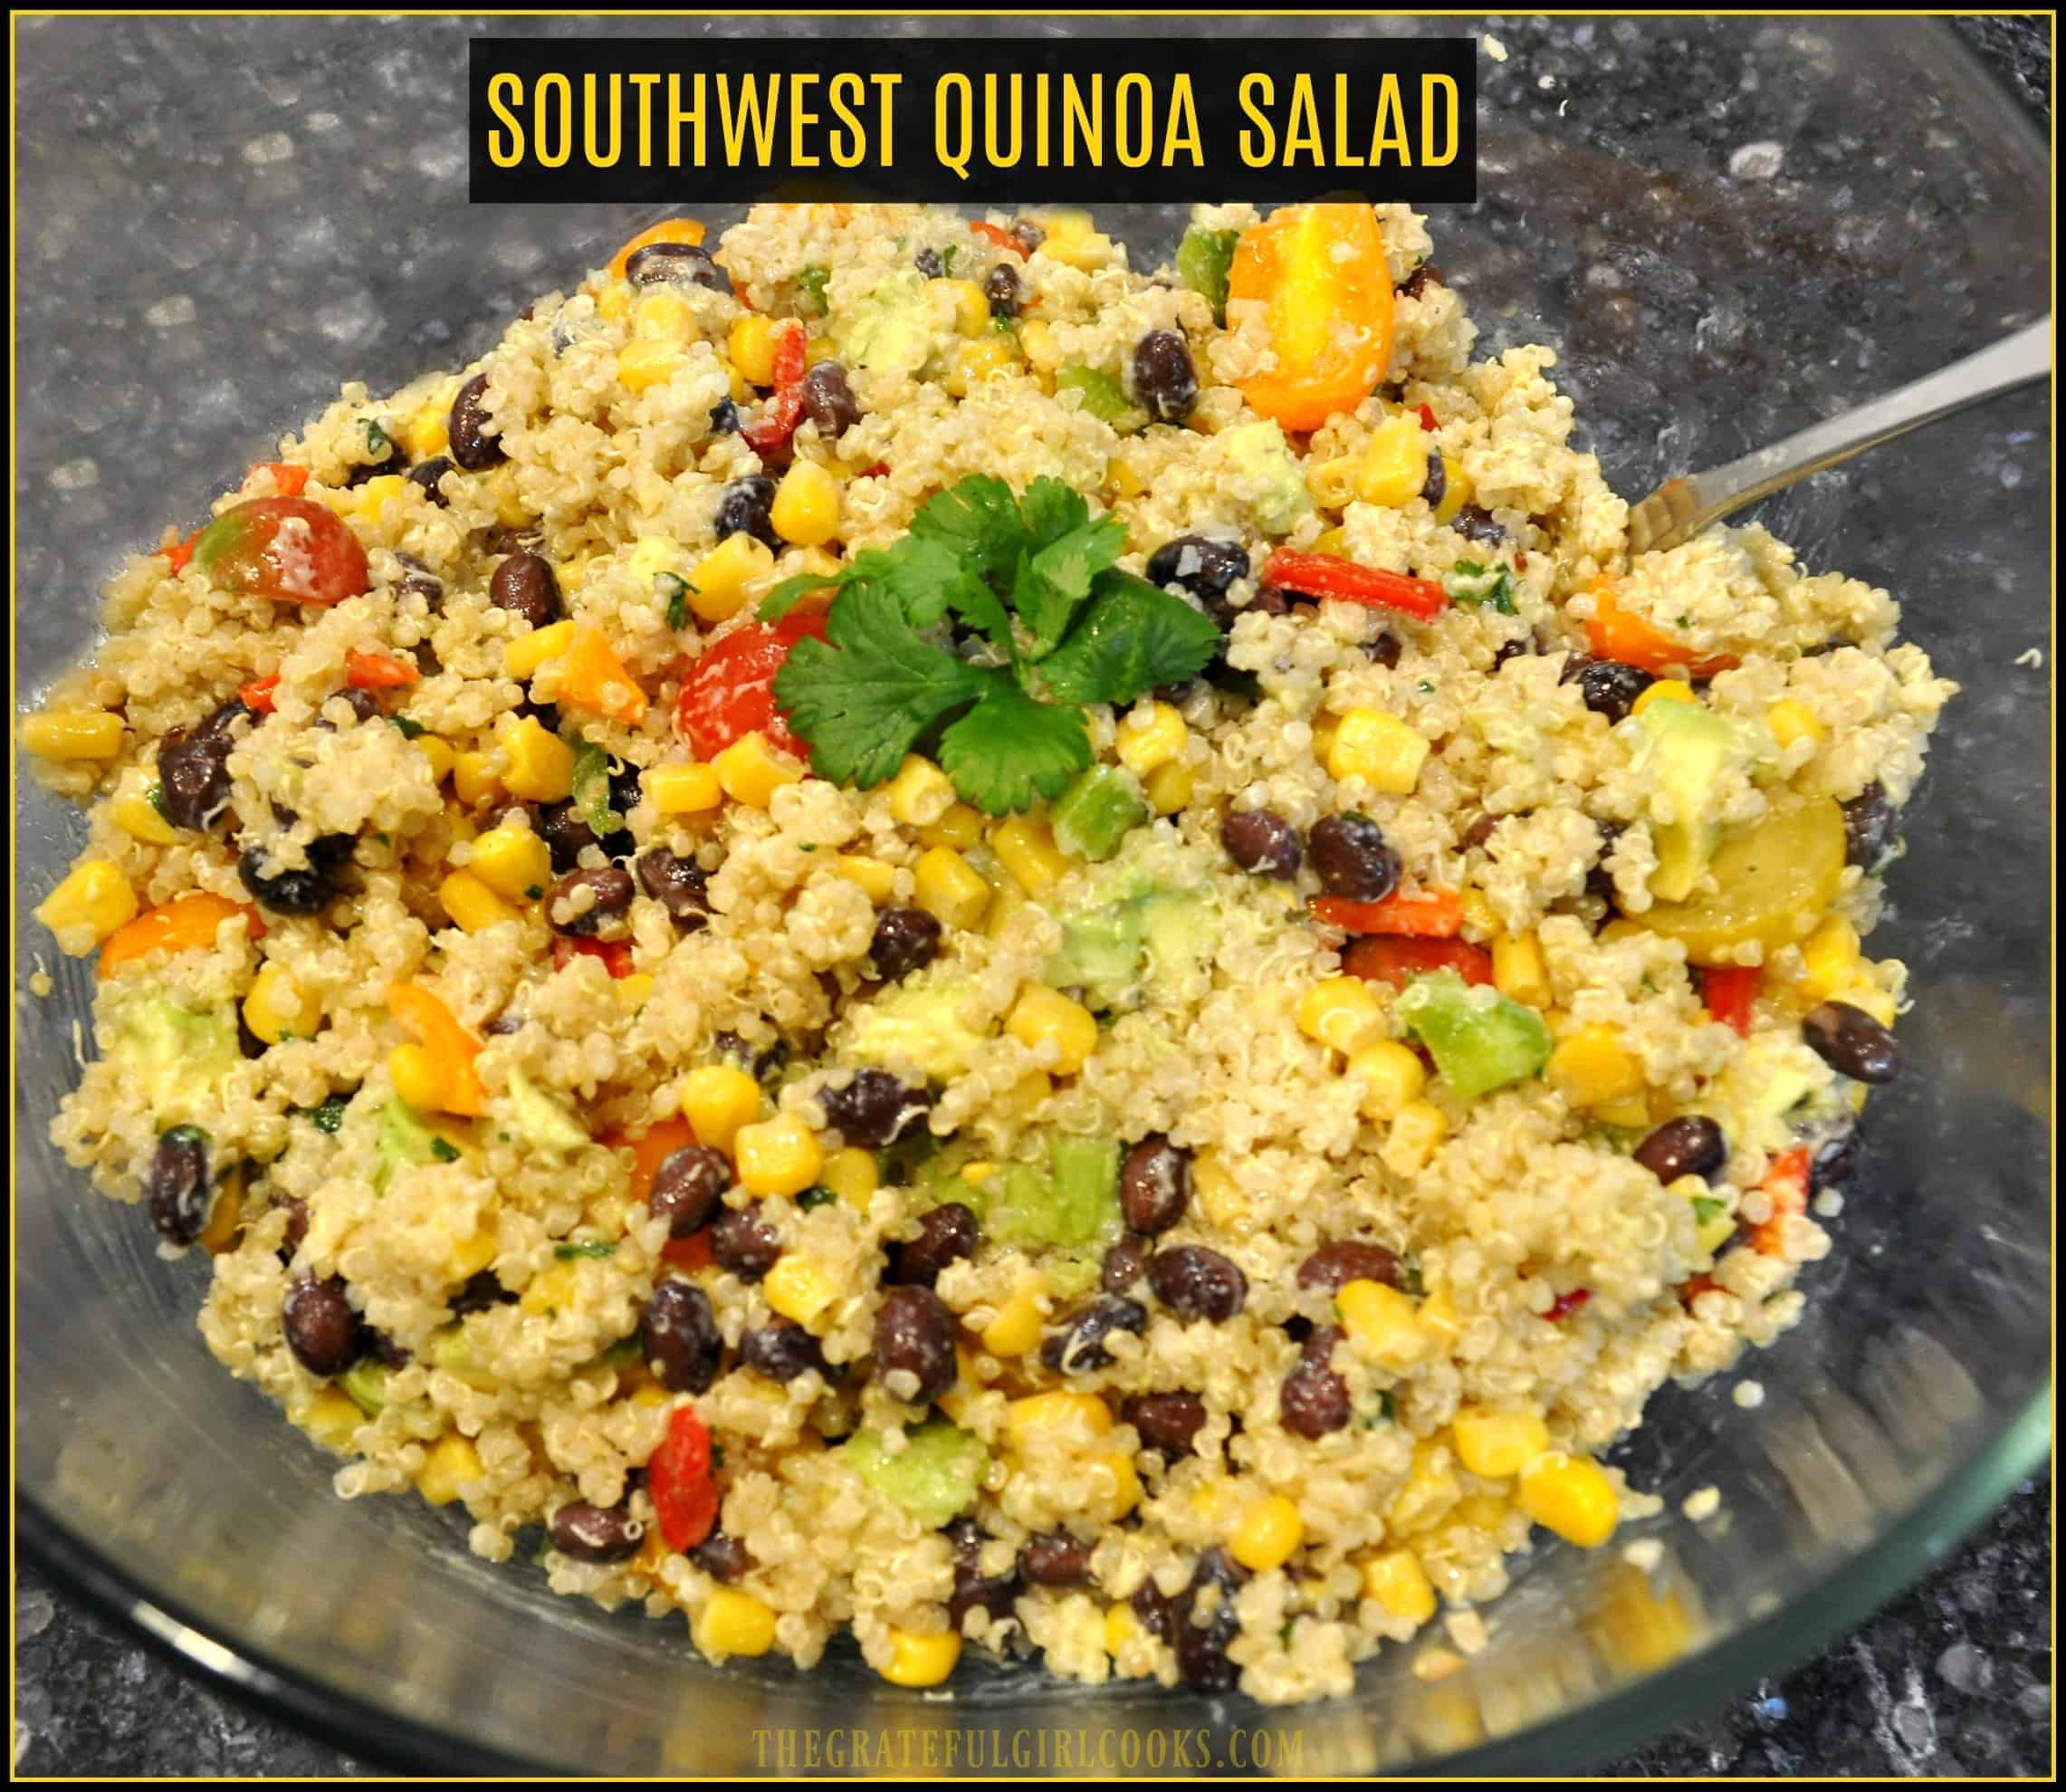 Southwest Quinoa Salad / The Grateful Girl Cooks! You'll love this healthy side or vegetarian dish featuring quinoa, tomatoes, corn, beans, peppers and avocado, topped with a flavorful cilantro lime dressing!